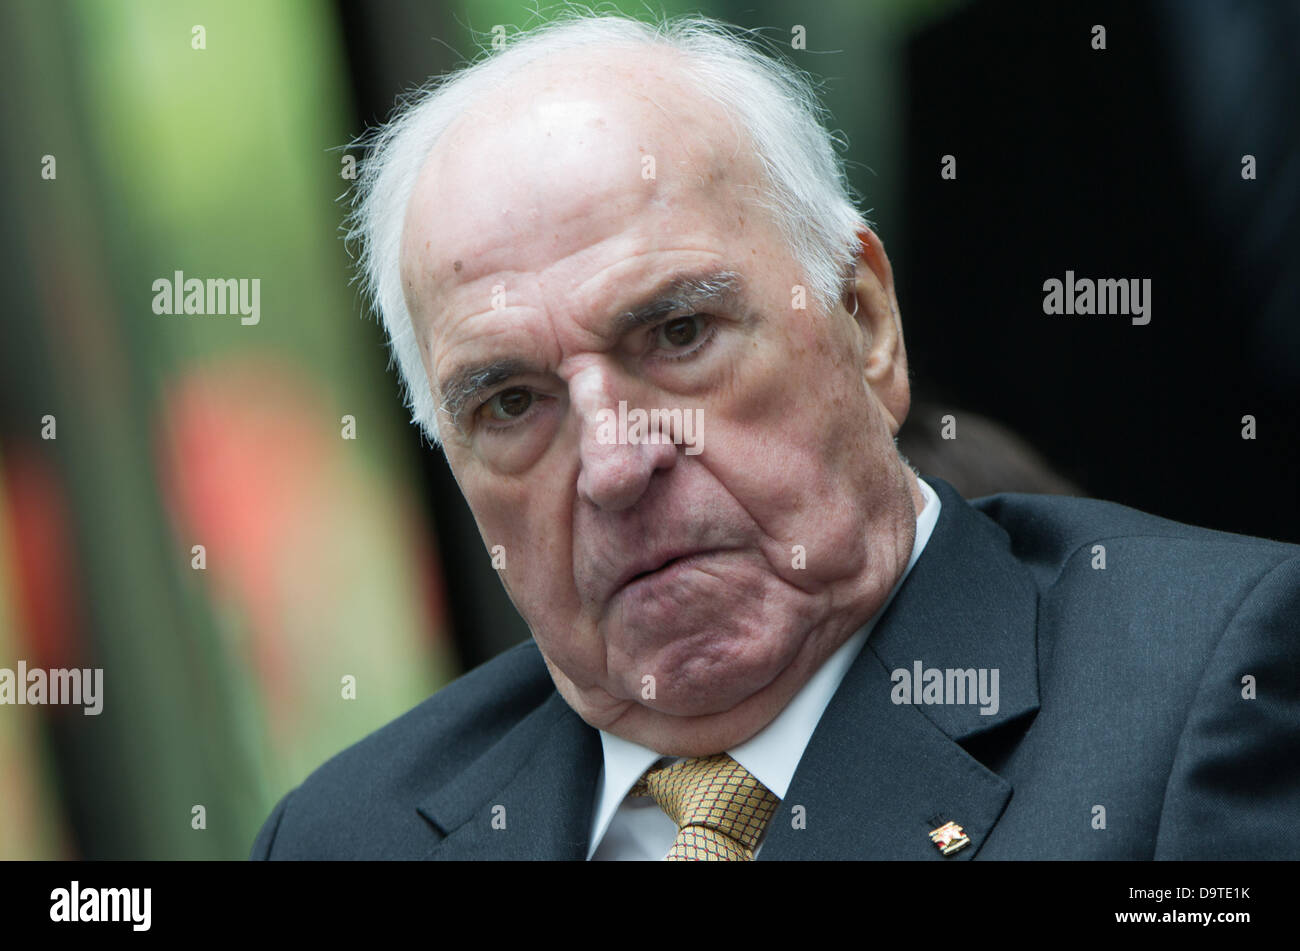 Berlin, Germany. 26th June 2013. Former German Chancellor Helmut Kohl talks during the unveiling of the monument - Stock Image